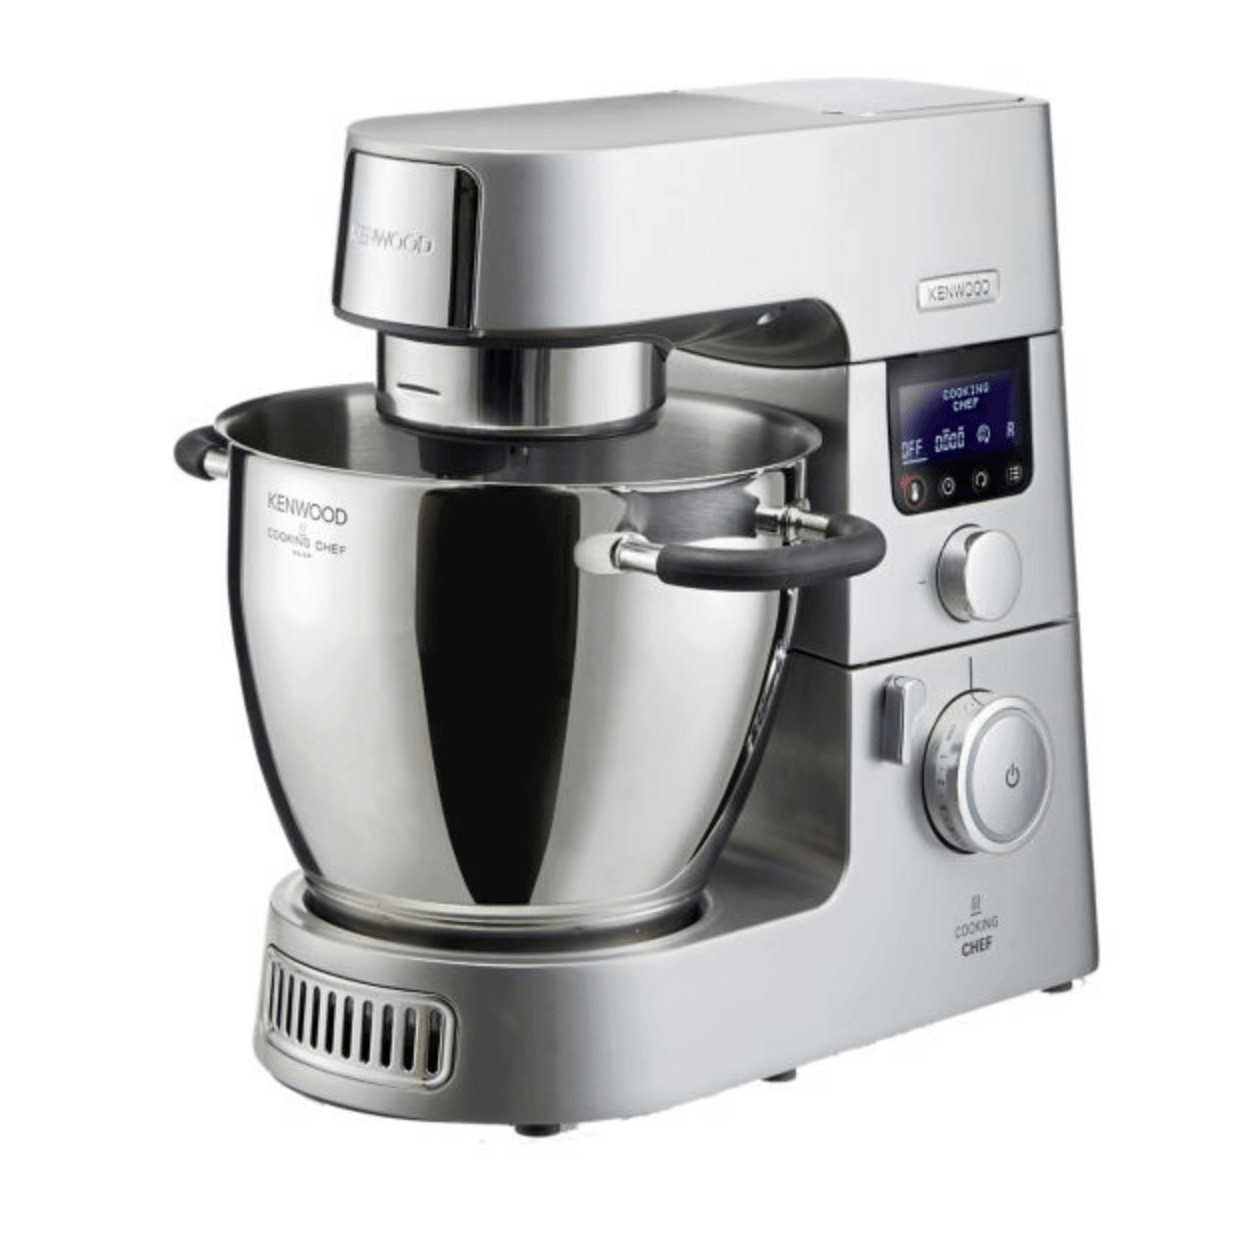 ROBOT CUISEUR KENWOOD COOKING CHEF MAJOR GOURMET